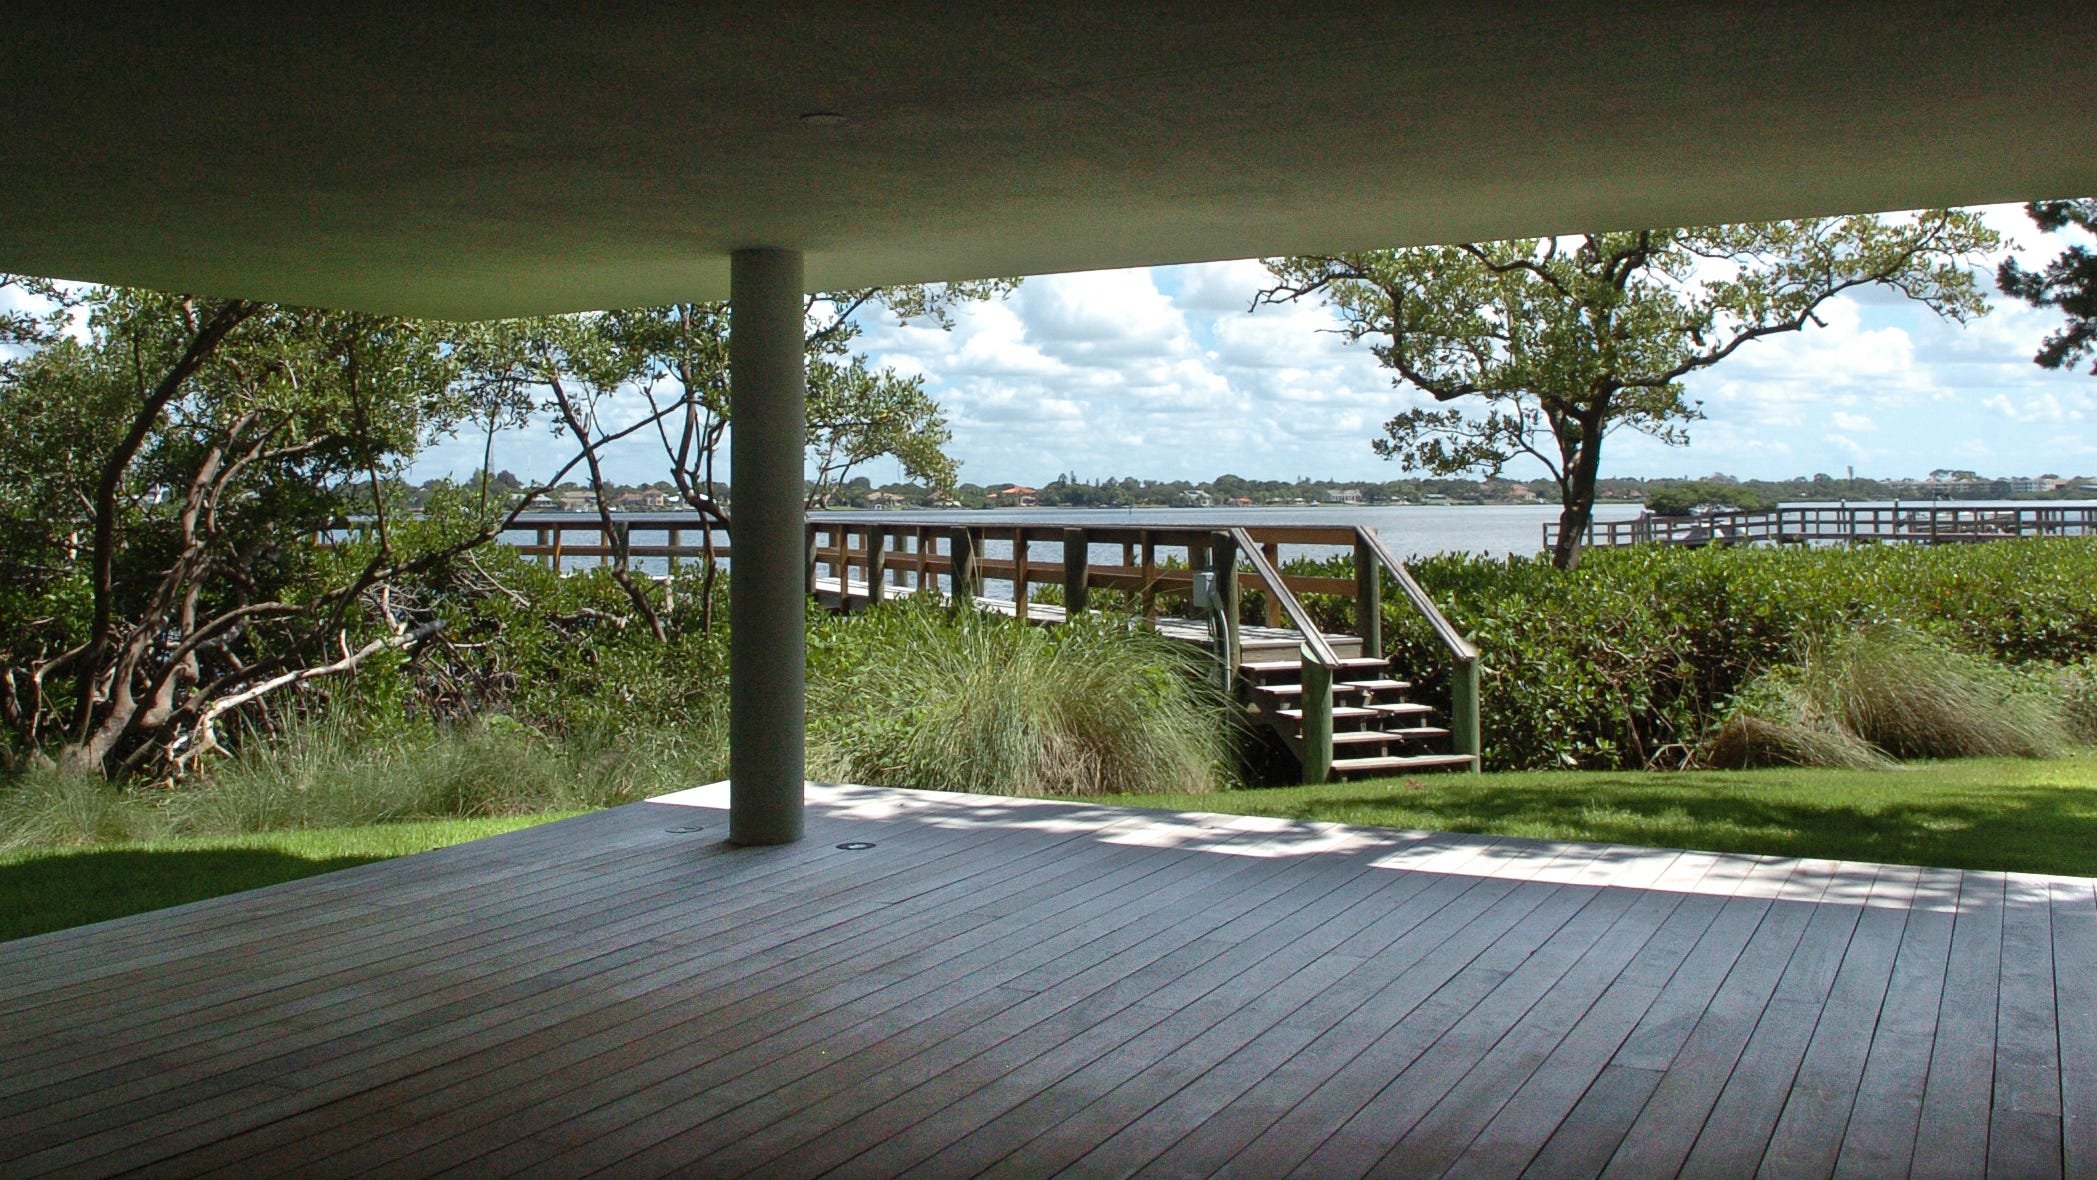 The Casey Key Guest House, designed by Jerry Sparkman of Sweet Sparkman Architects, nestles into the oak hammock on North Casey Key Road near Nokomis. The structure, part of a three-house compound, has won several awards and been publicized around the world. HERALD-TRIBUNE STAFF FILE PHOTO / HAROLD BUBIL